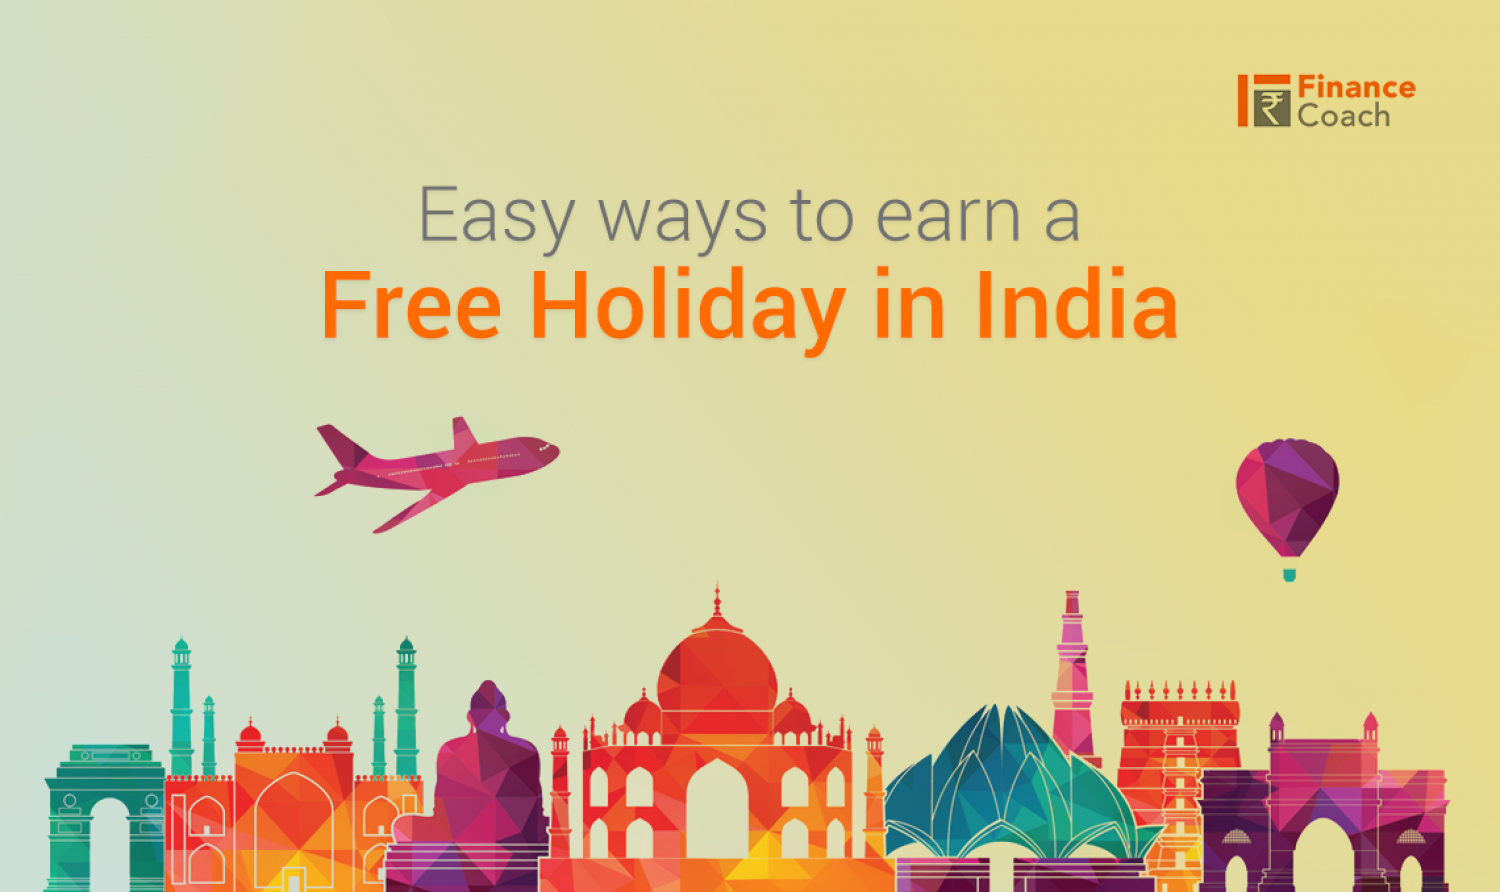 EASY WAYS TO EARN A FREE HOLIDAY IN INDIA Infographic